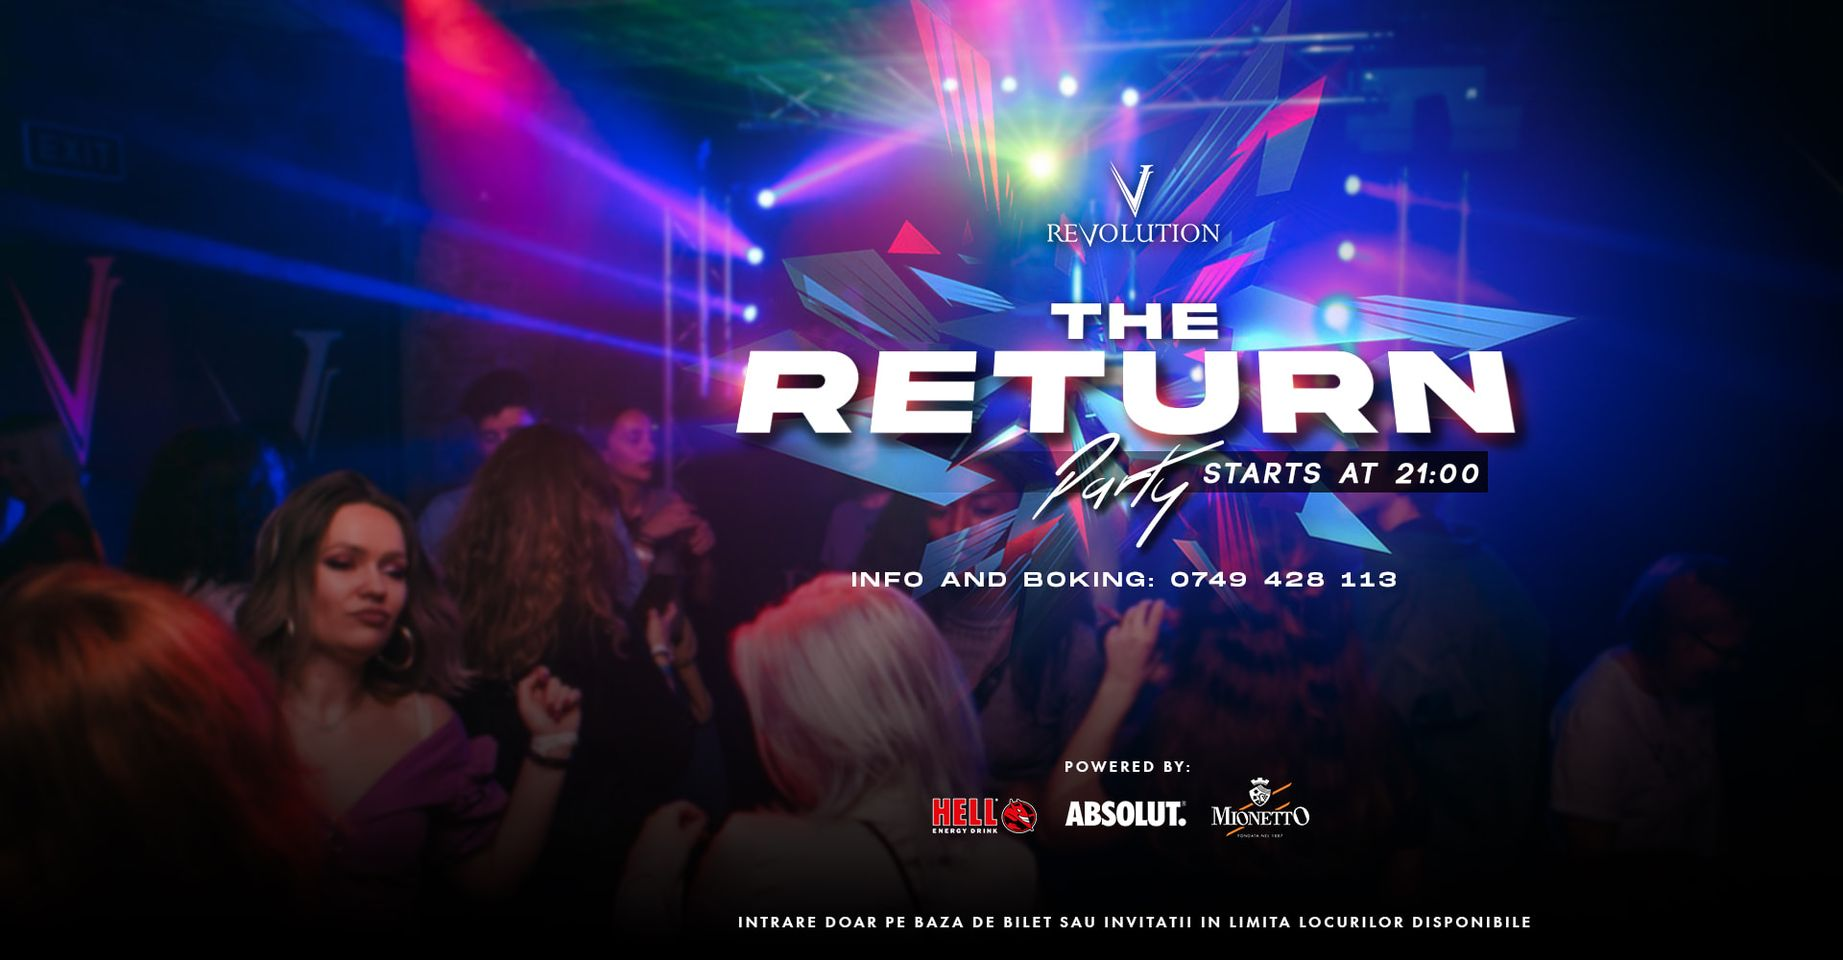 The Return to REVOLUTION Party